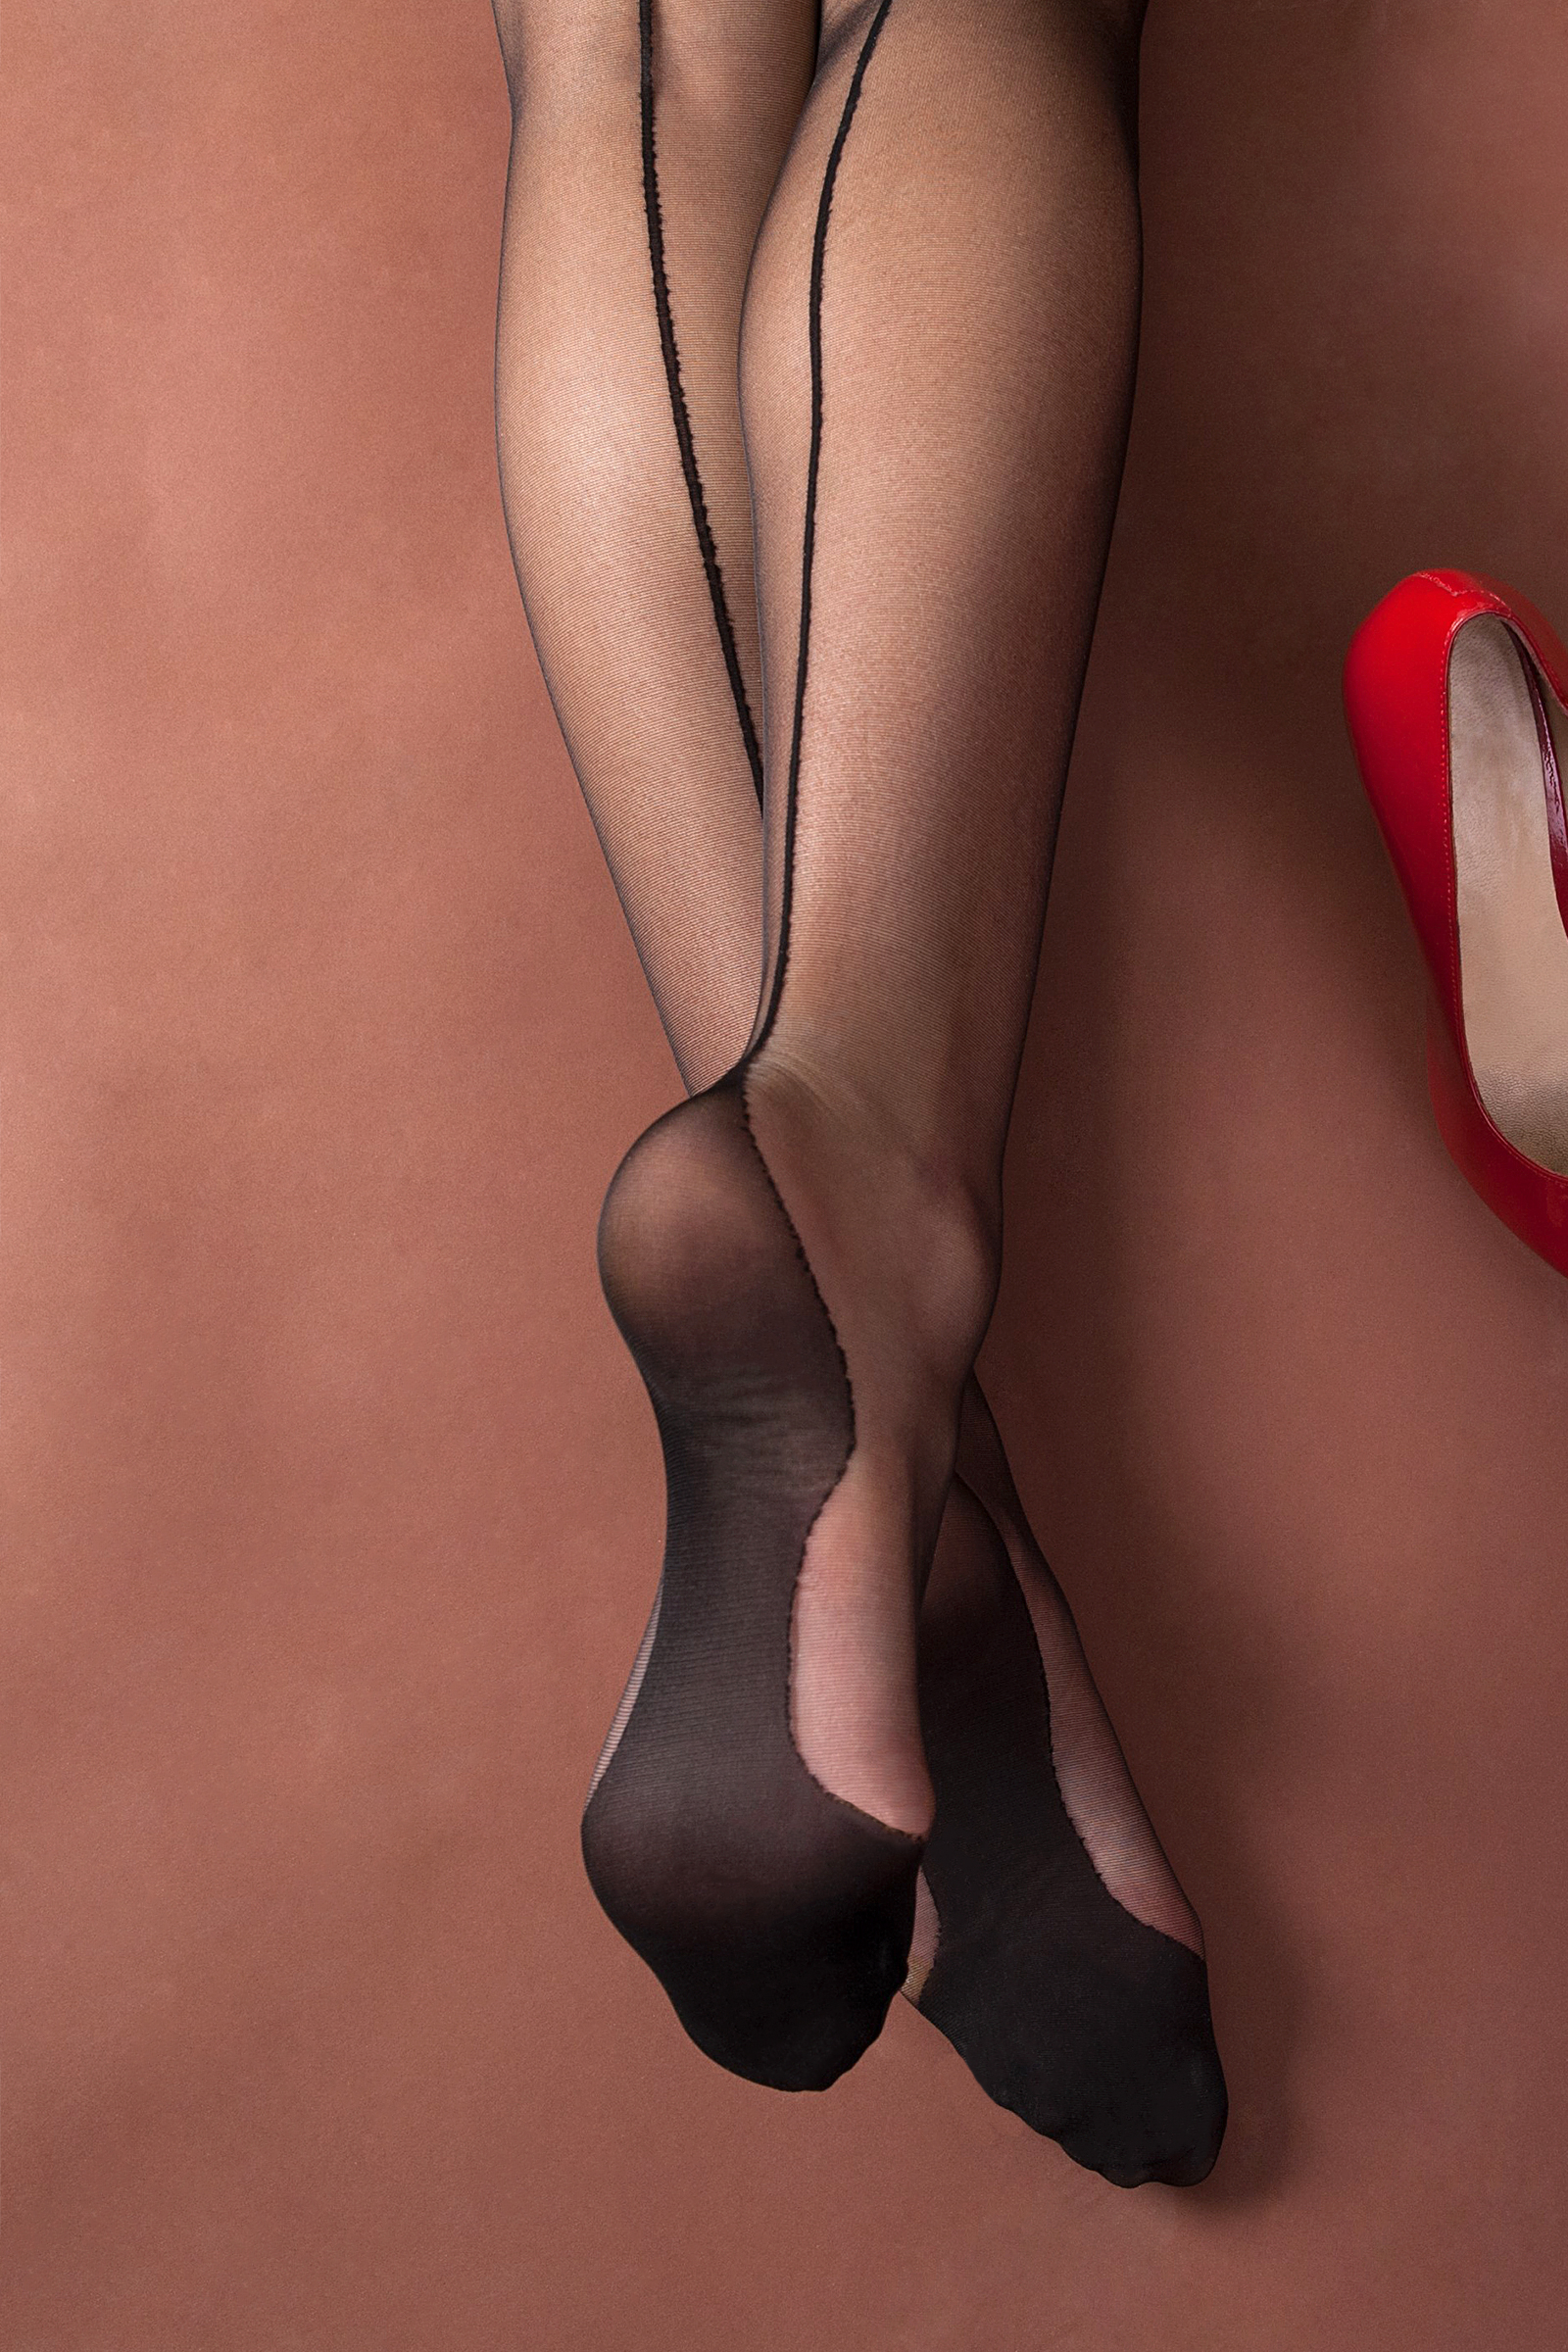 Pantyhose fashion trends